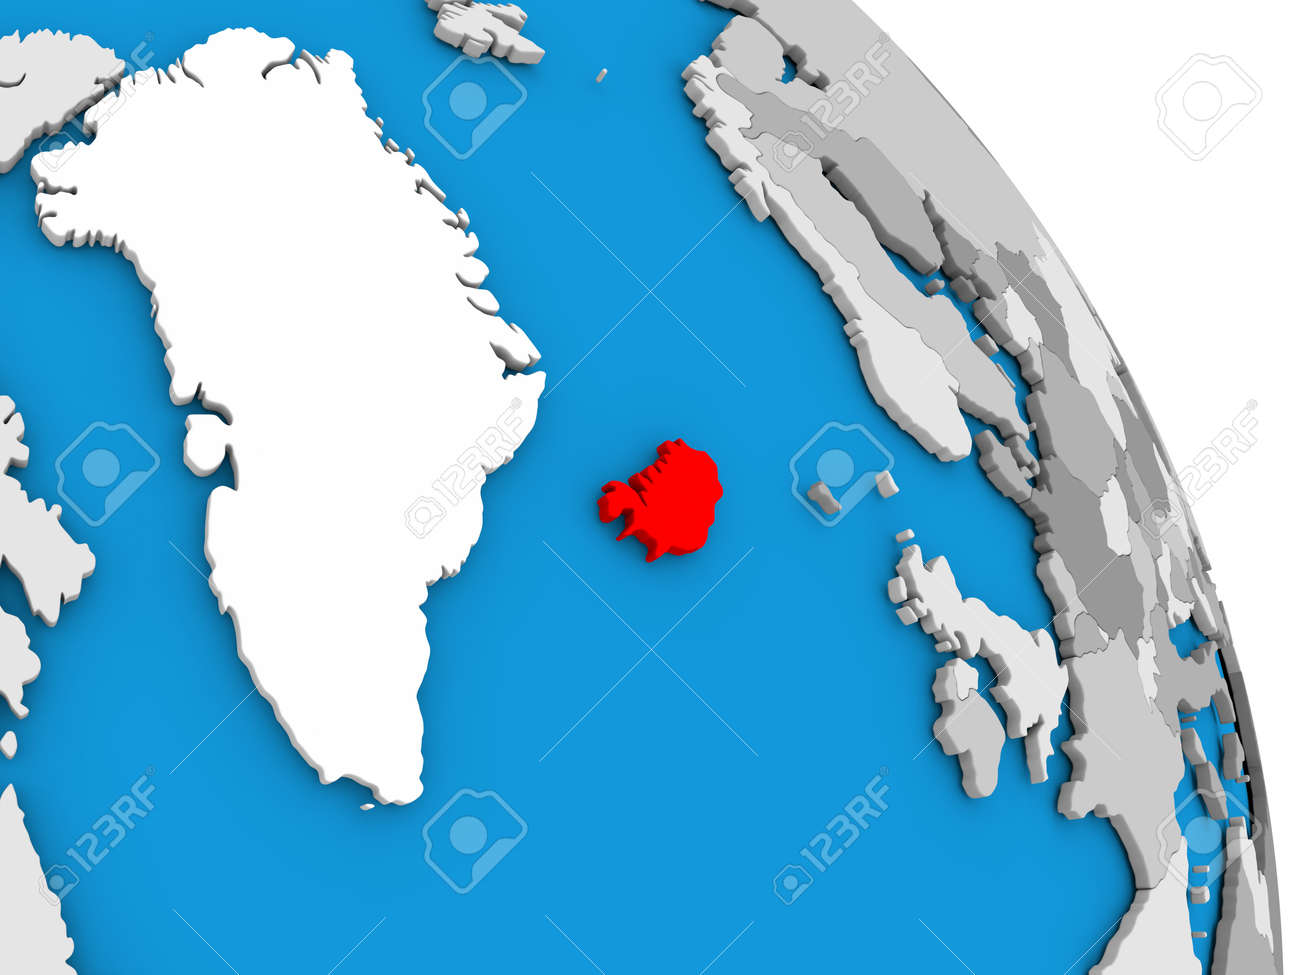 Iceland highlighted in red on simple globe with visible country iceland highlighted in red on simple globe with visible country borders 3d illustration stock illustration gumiabroncs Choice Image